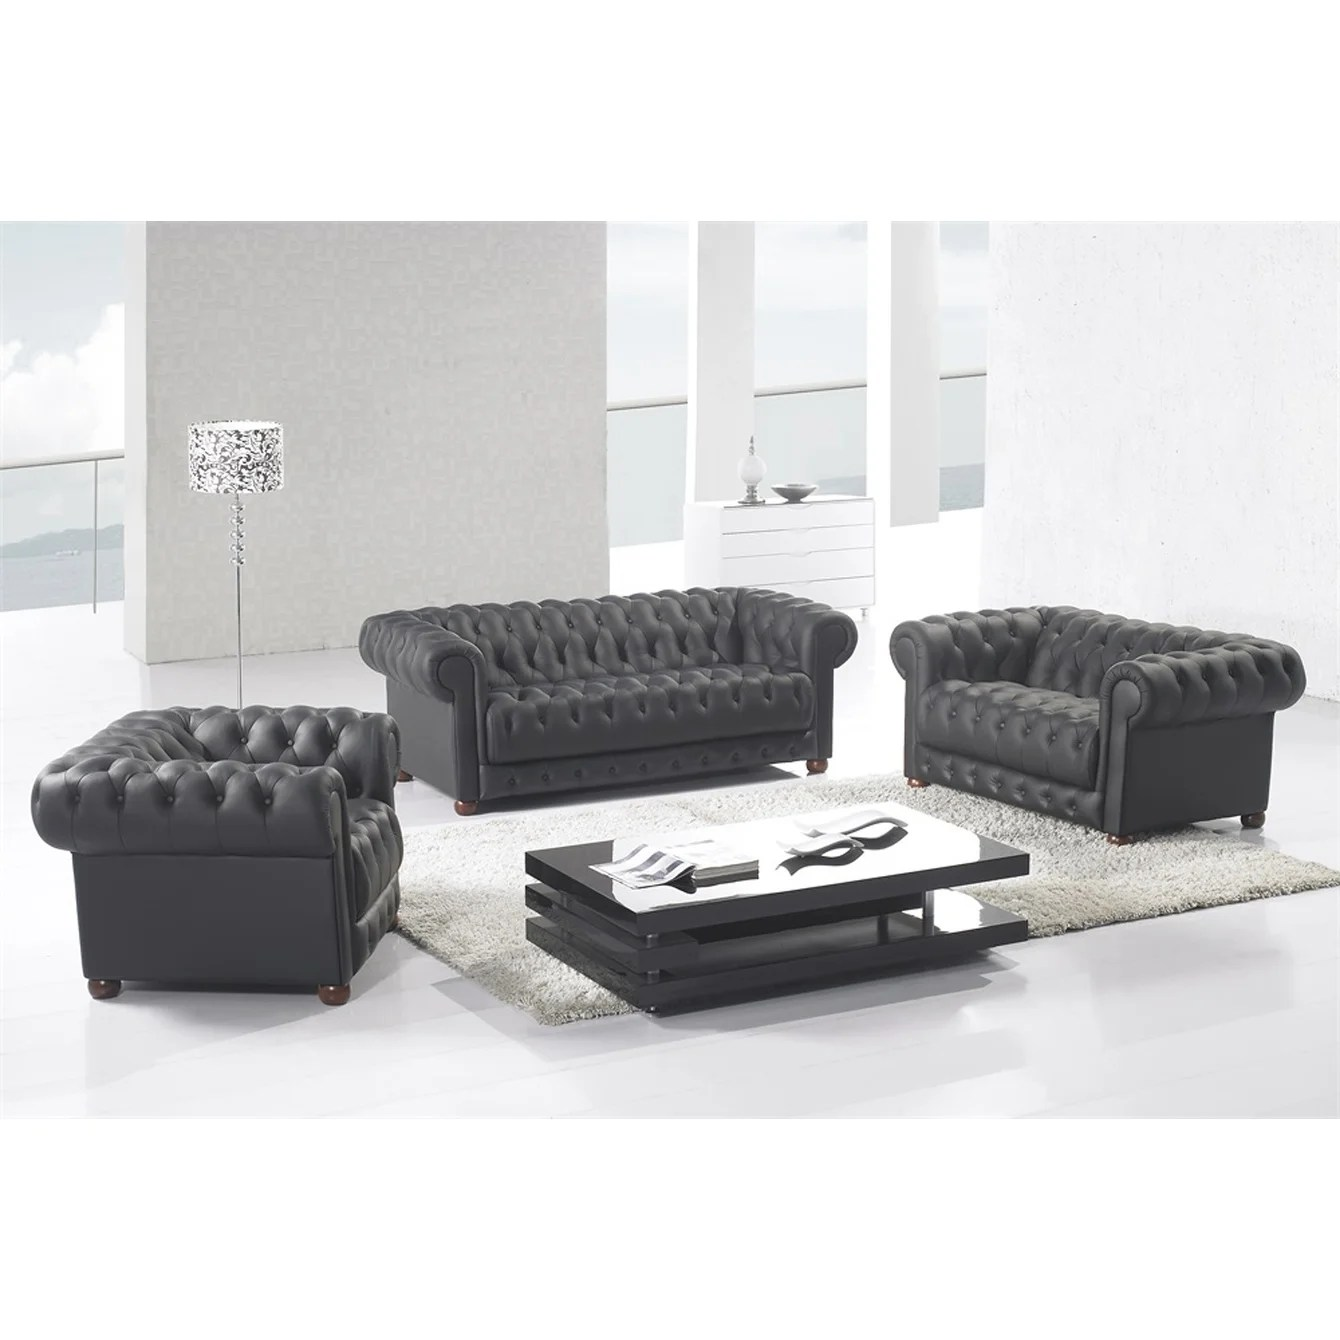 Matte Black Modern Contemporary Real Leather Configurable Living Room Furniture Set With Sofa Loveseat And Chair Overstock 24239956 Brown